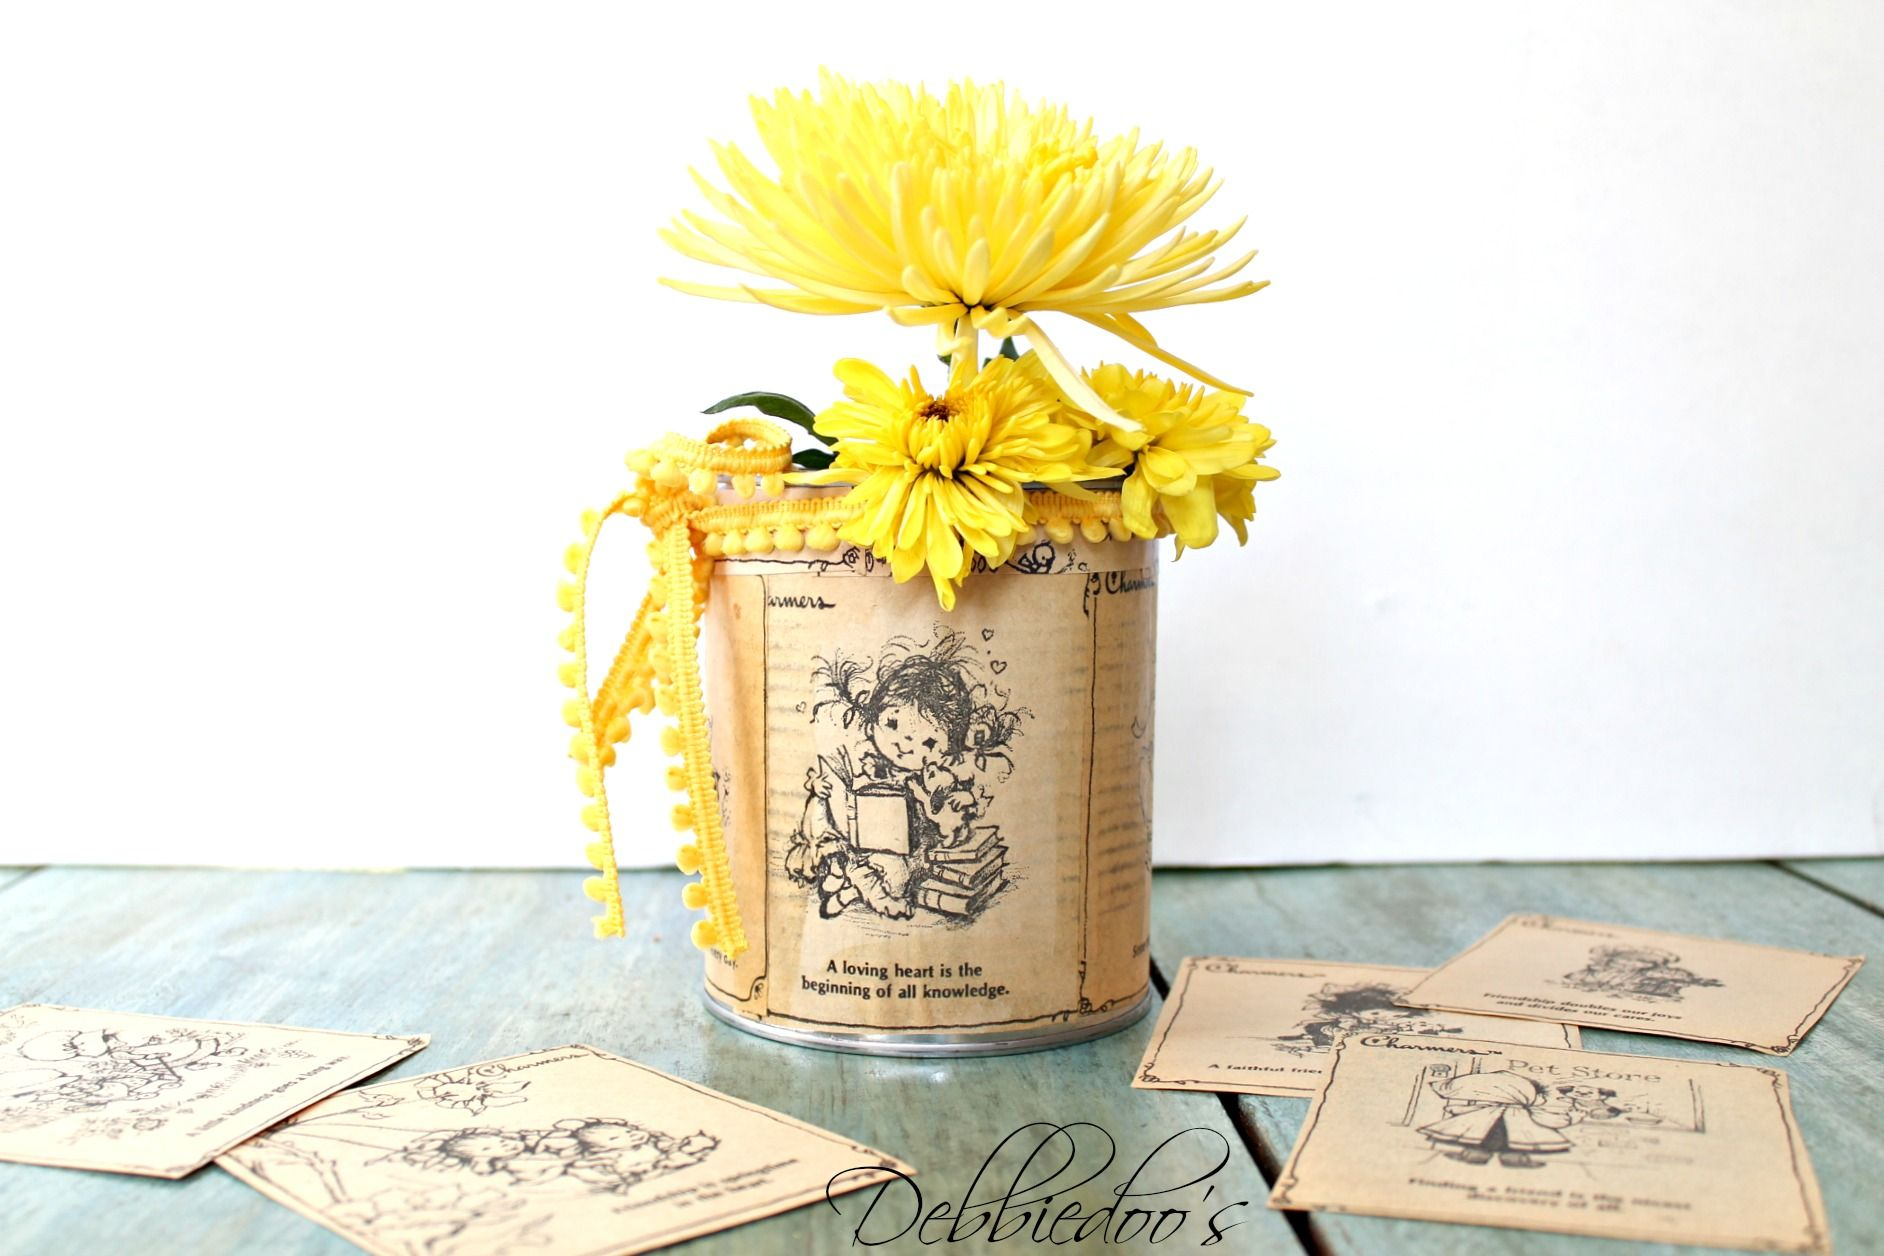 10+ ways to craft ande decorate with cans. These make for the cutest table top decor!